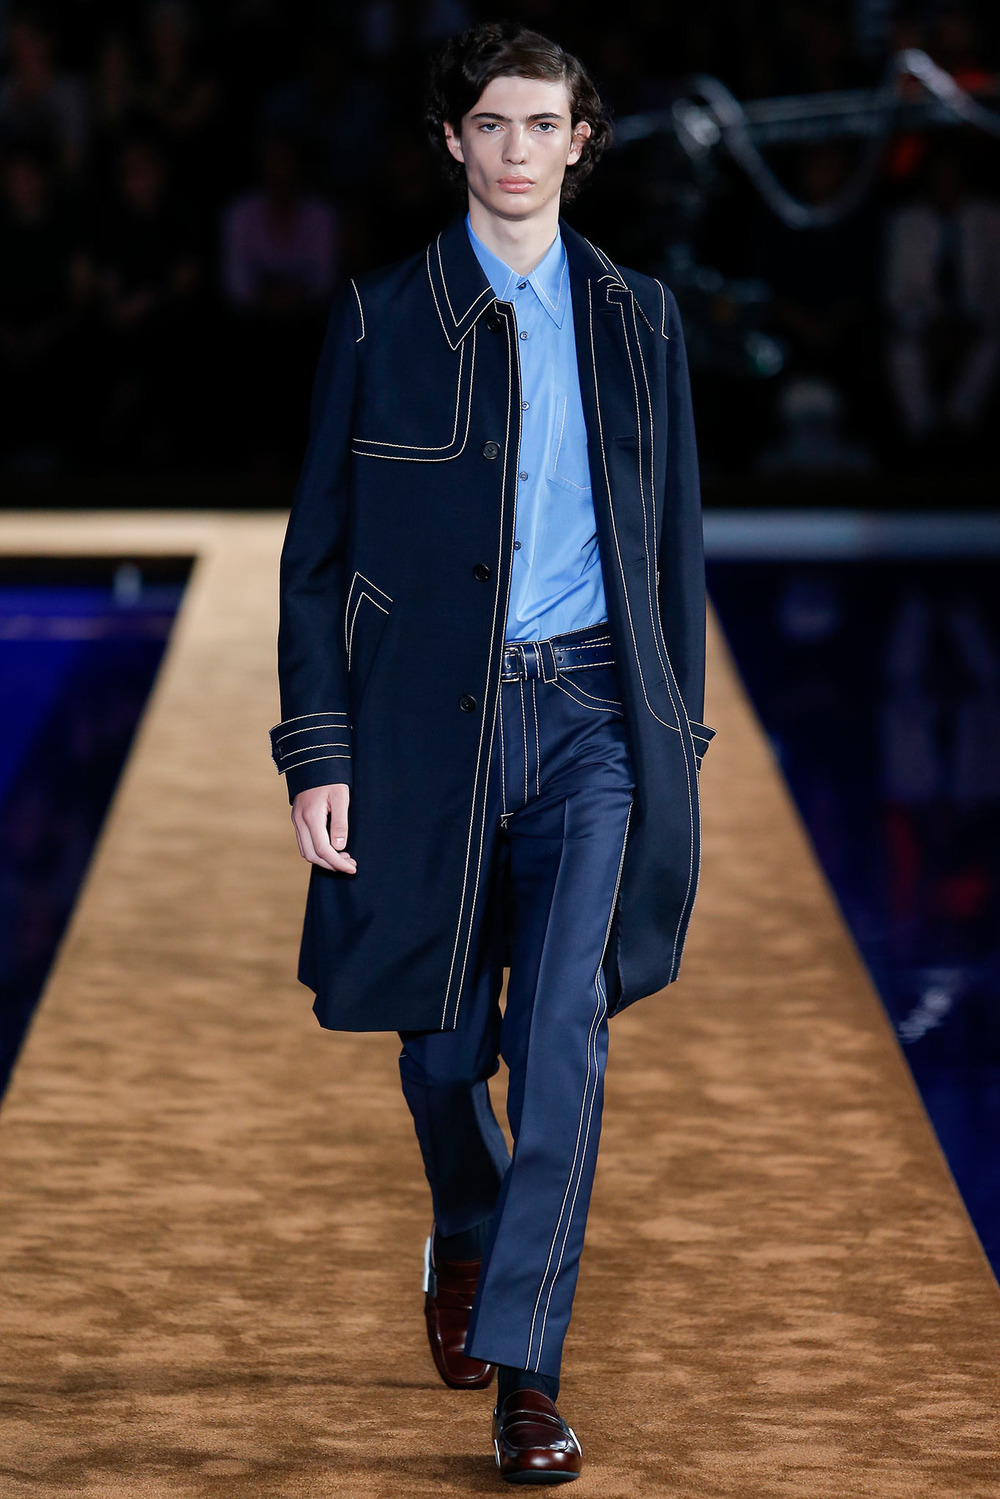 Prada s/s 2015, look 1. Source: Style.com